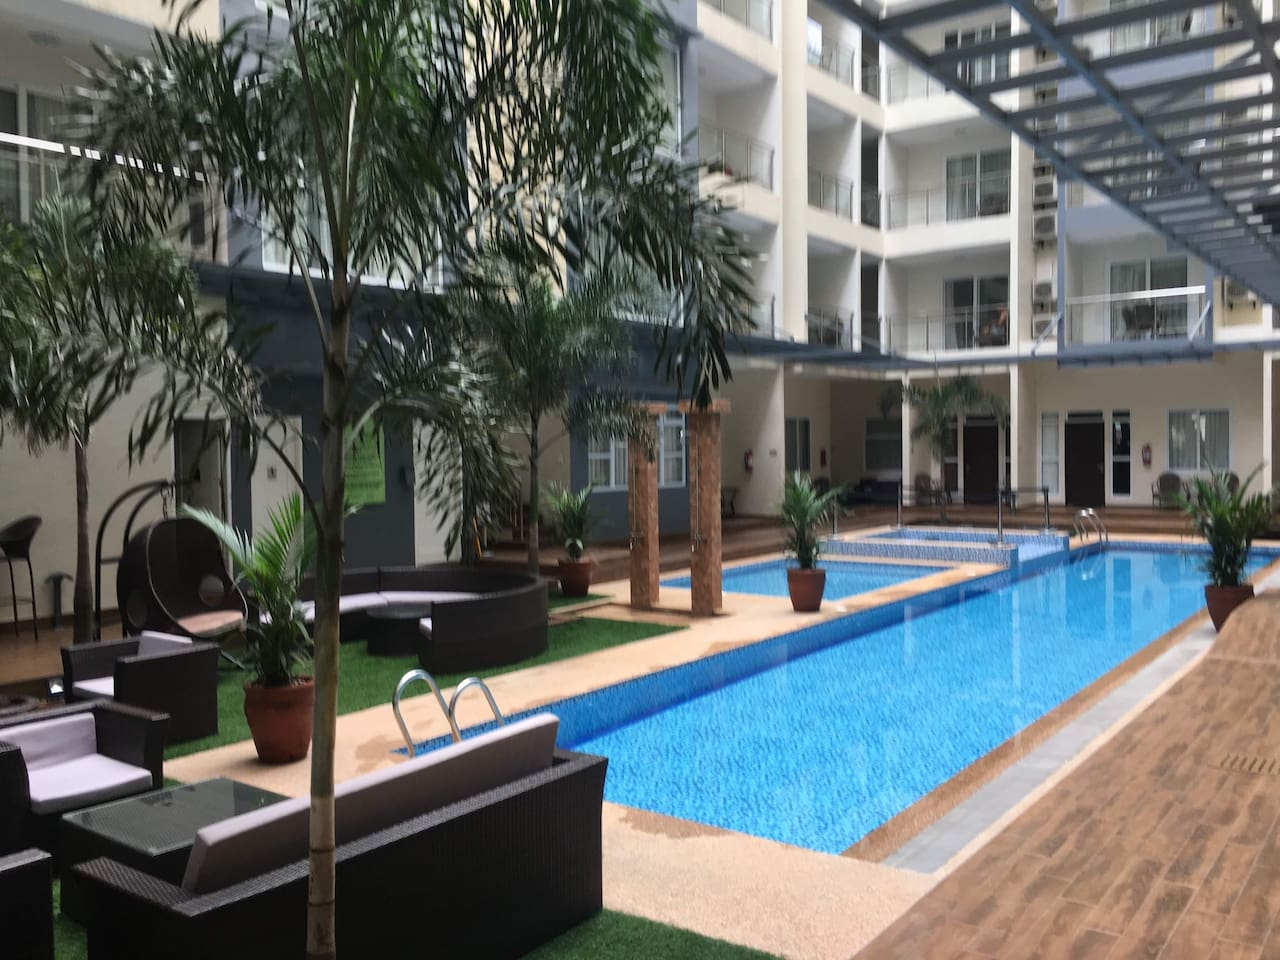 Ground Floor Pool Area